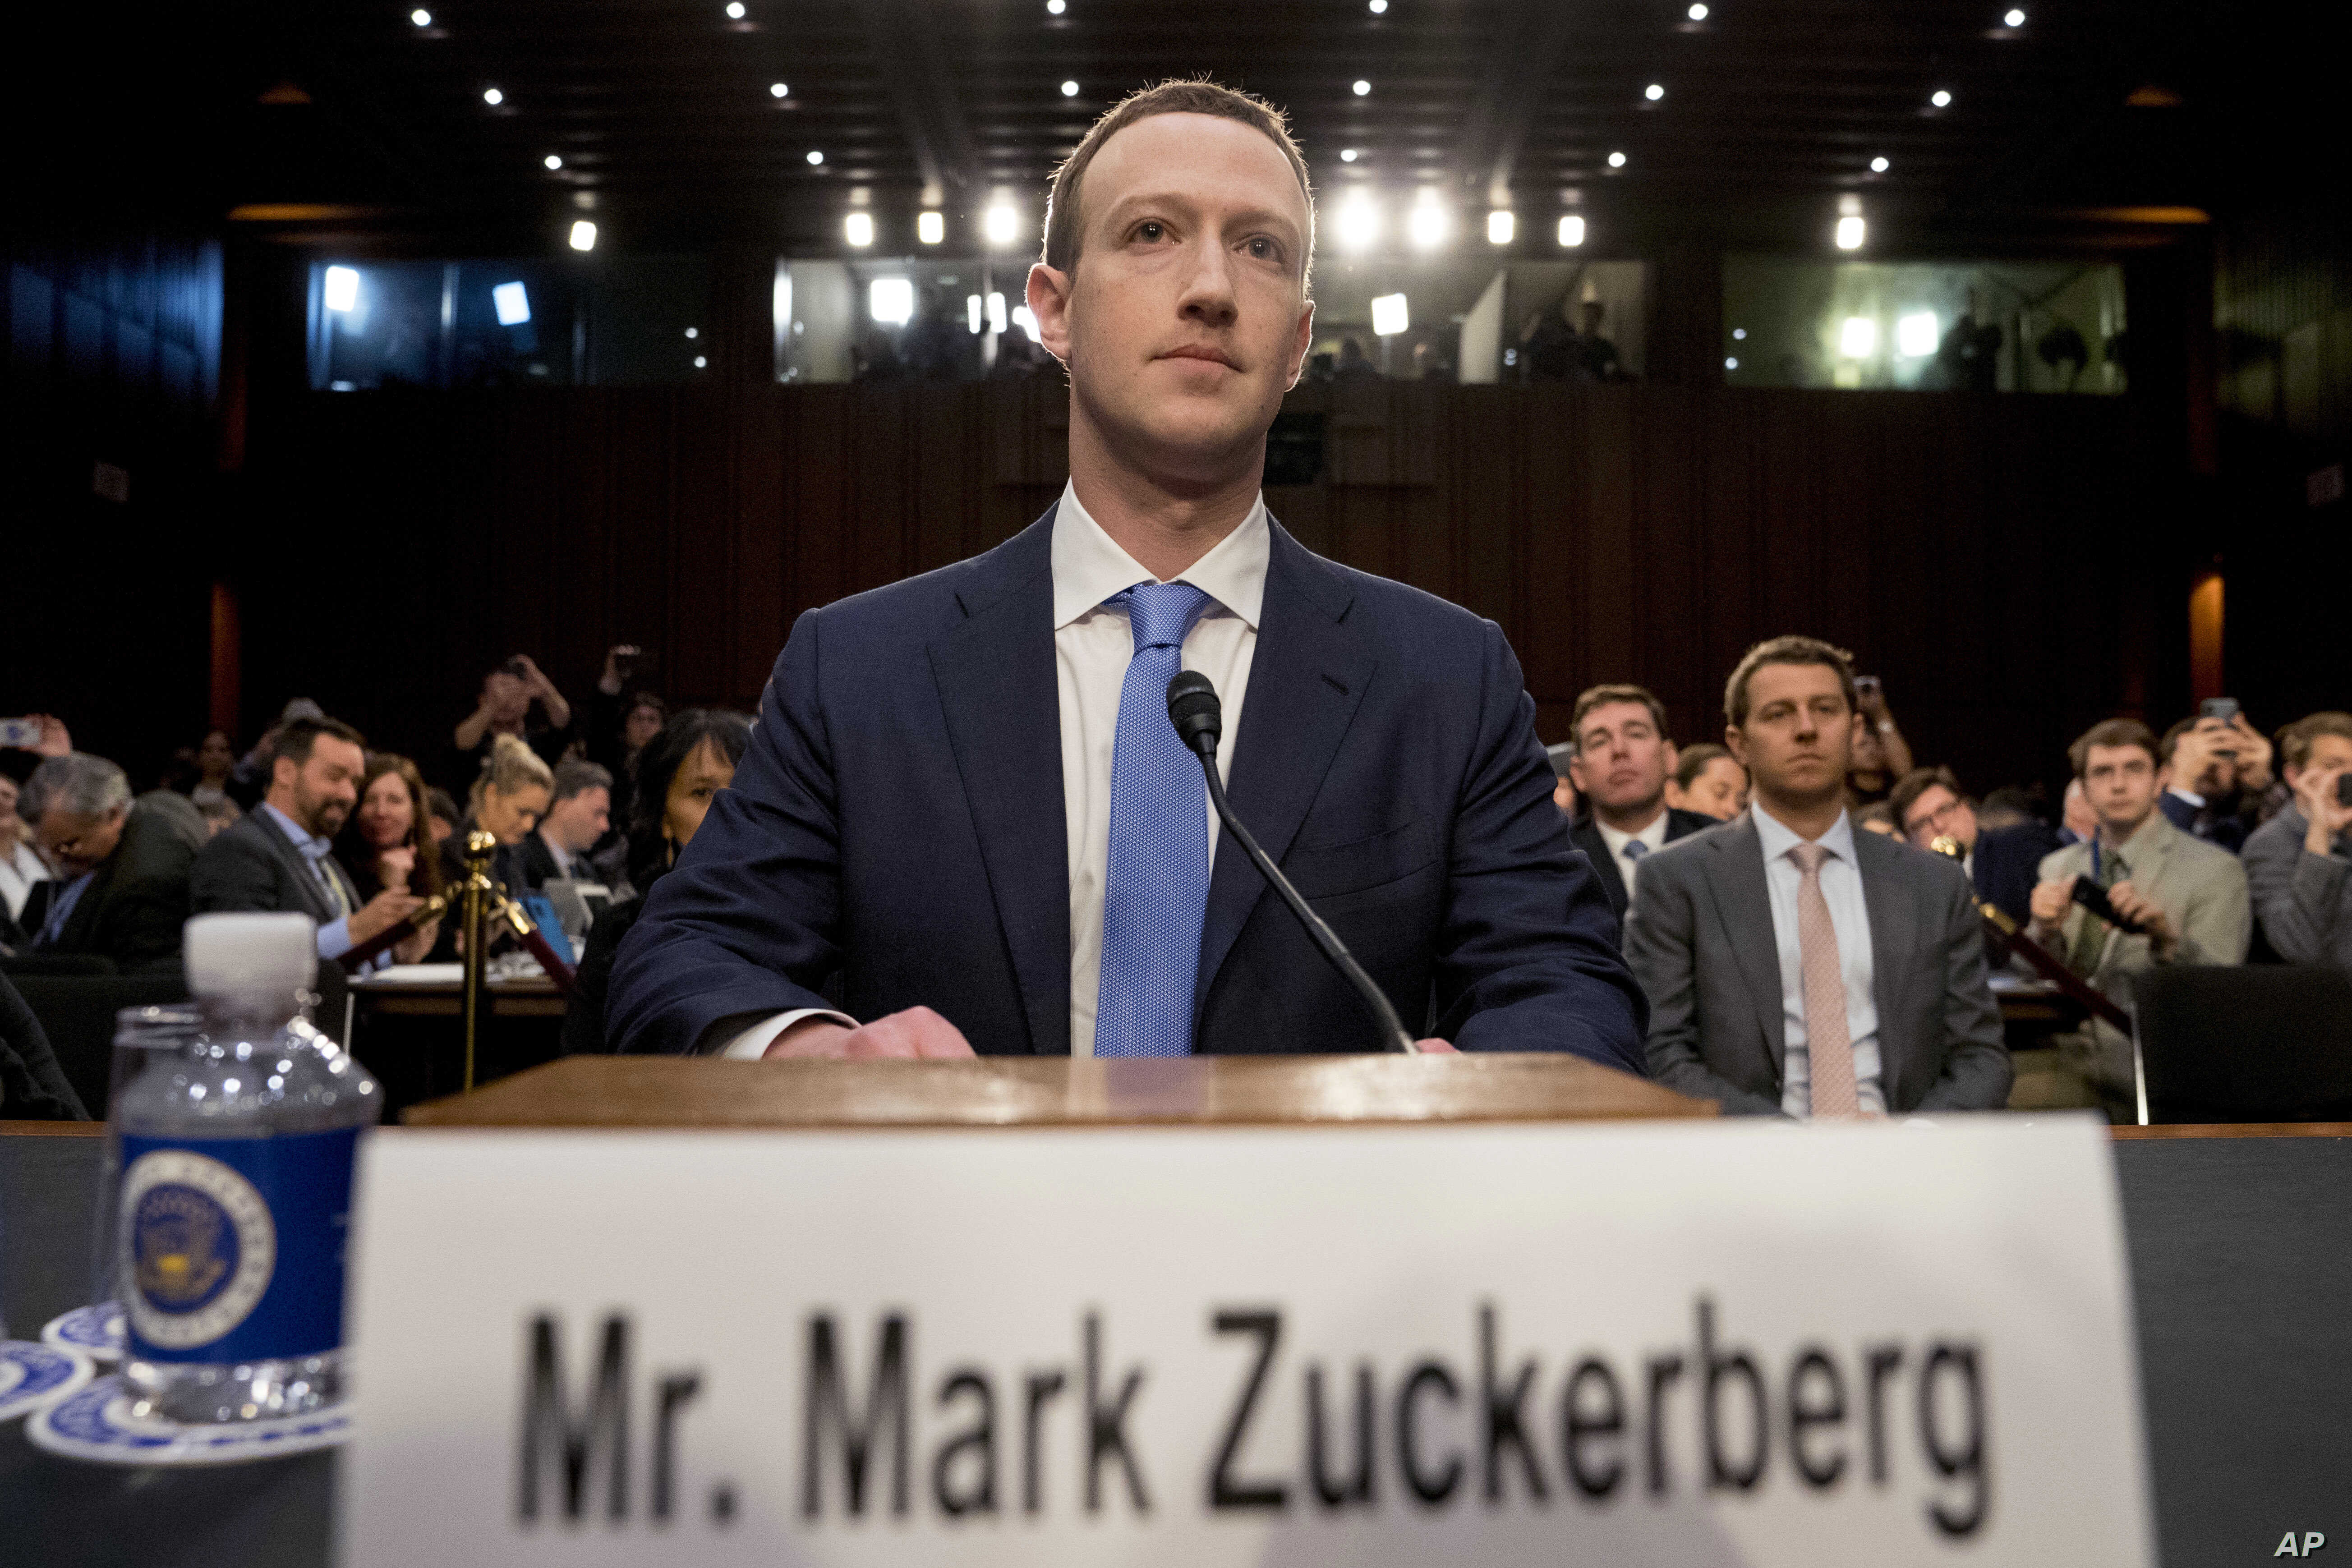 Facebook's Zuckerberg Vows to 'Keep Building' in No-apology Address